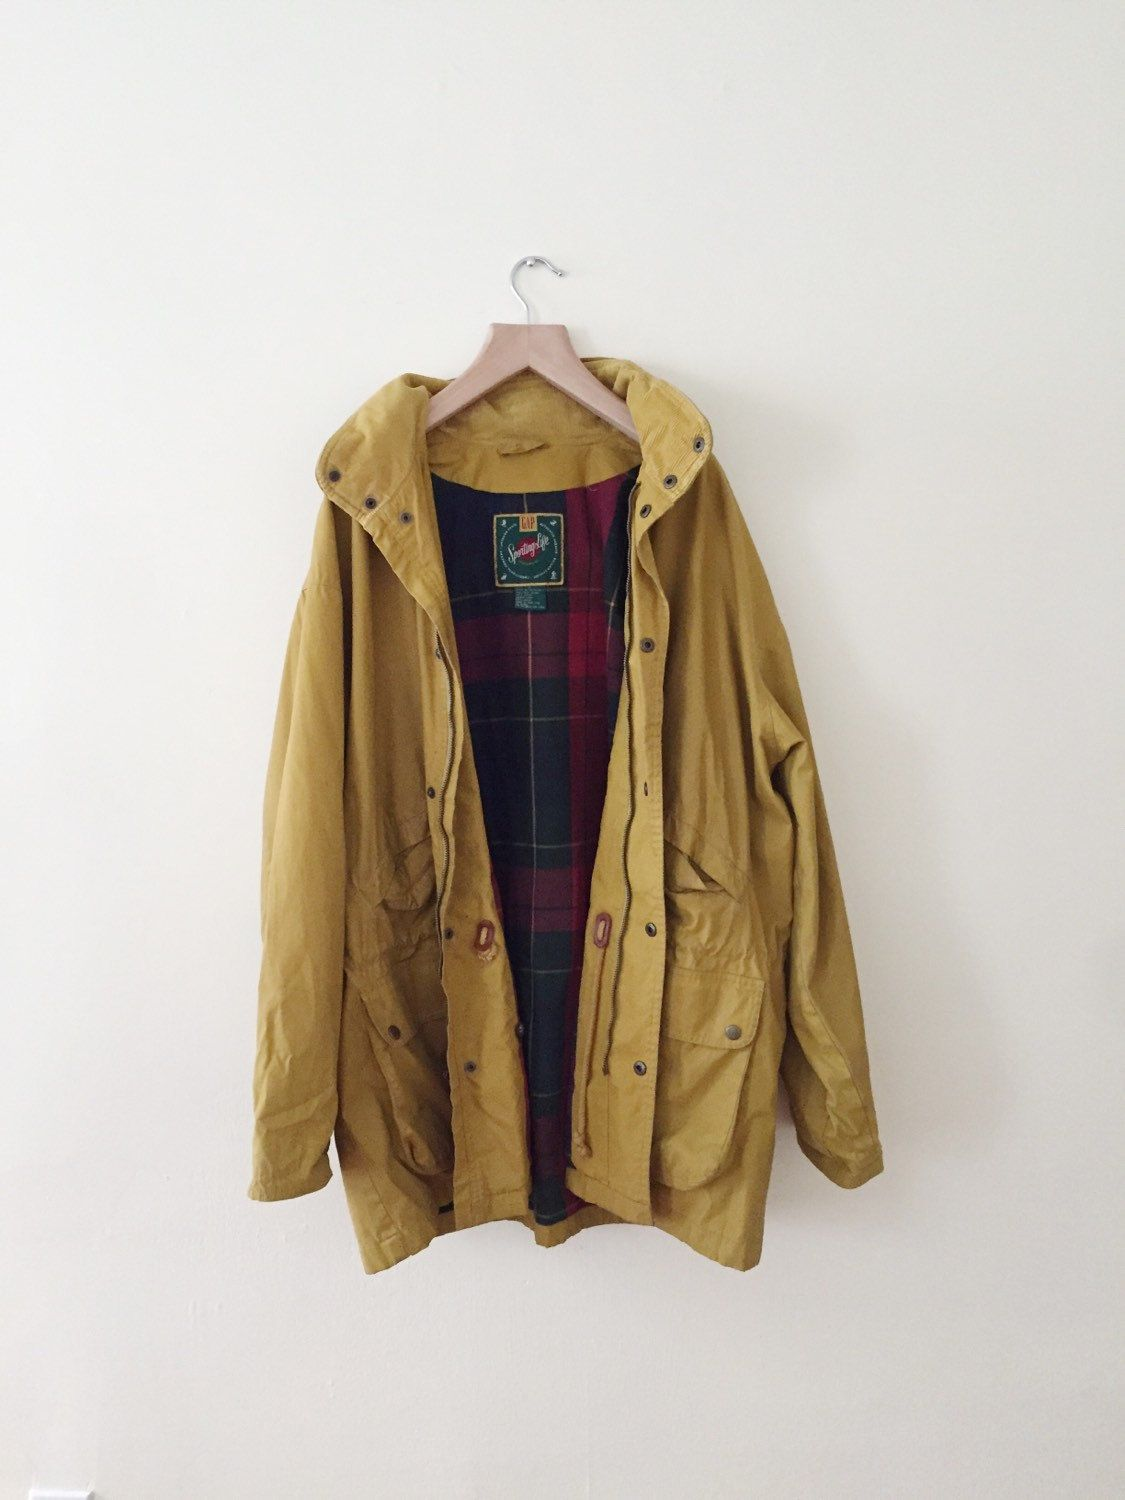 ccebb44fe2e A beautiful coat. Wardrobe planning for fall 2017   femalefashionadvice.  vintage gap mustard yellow jacket   anorak with plaid lining